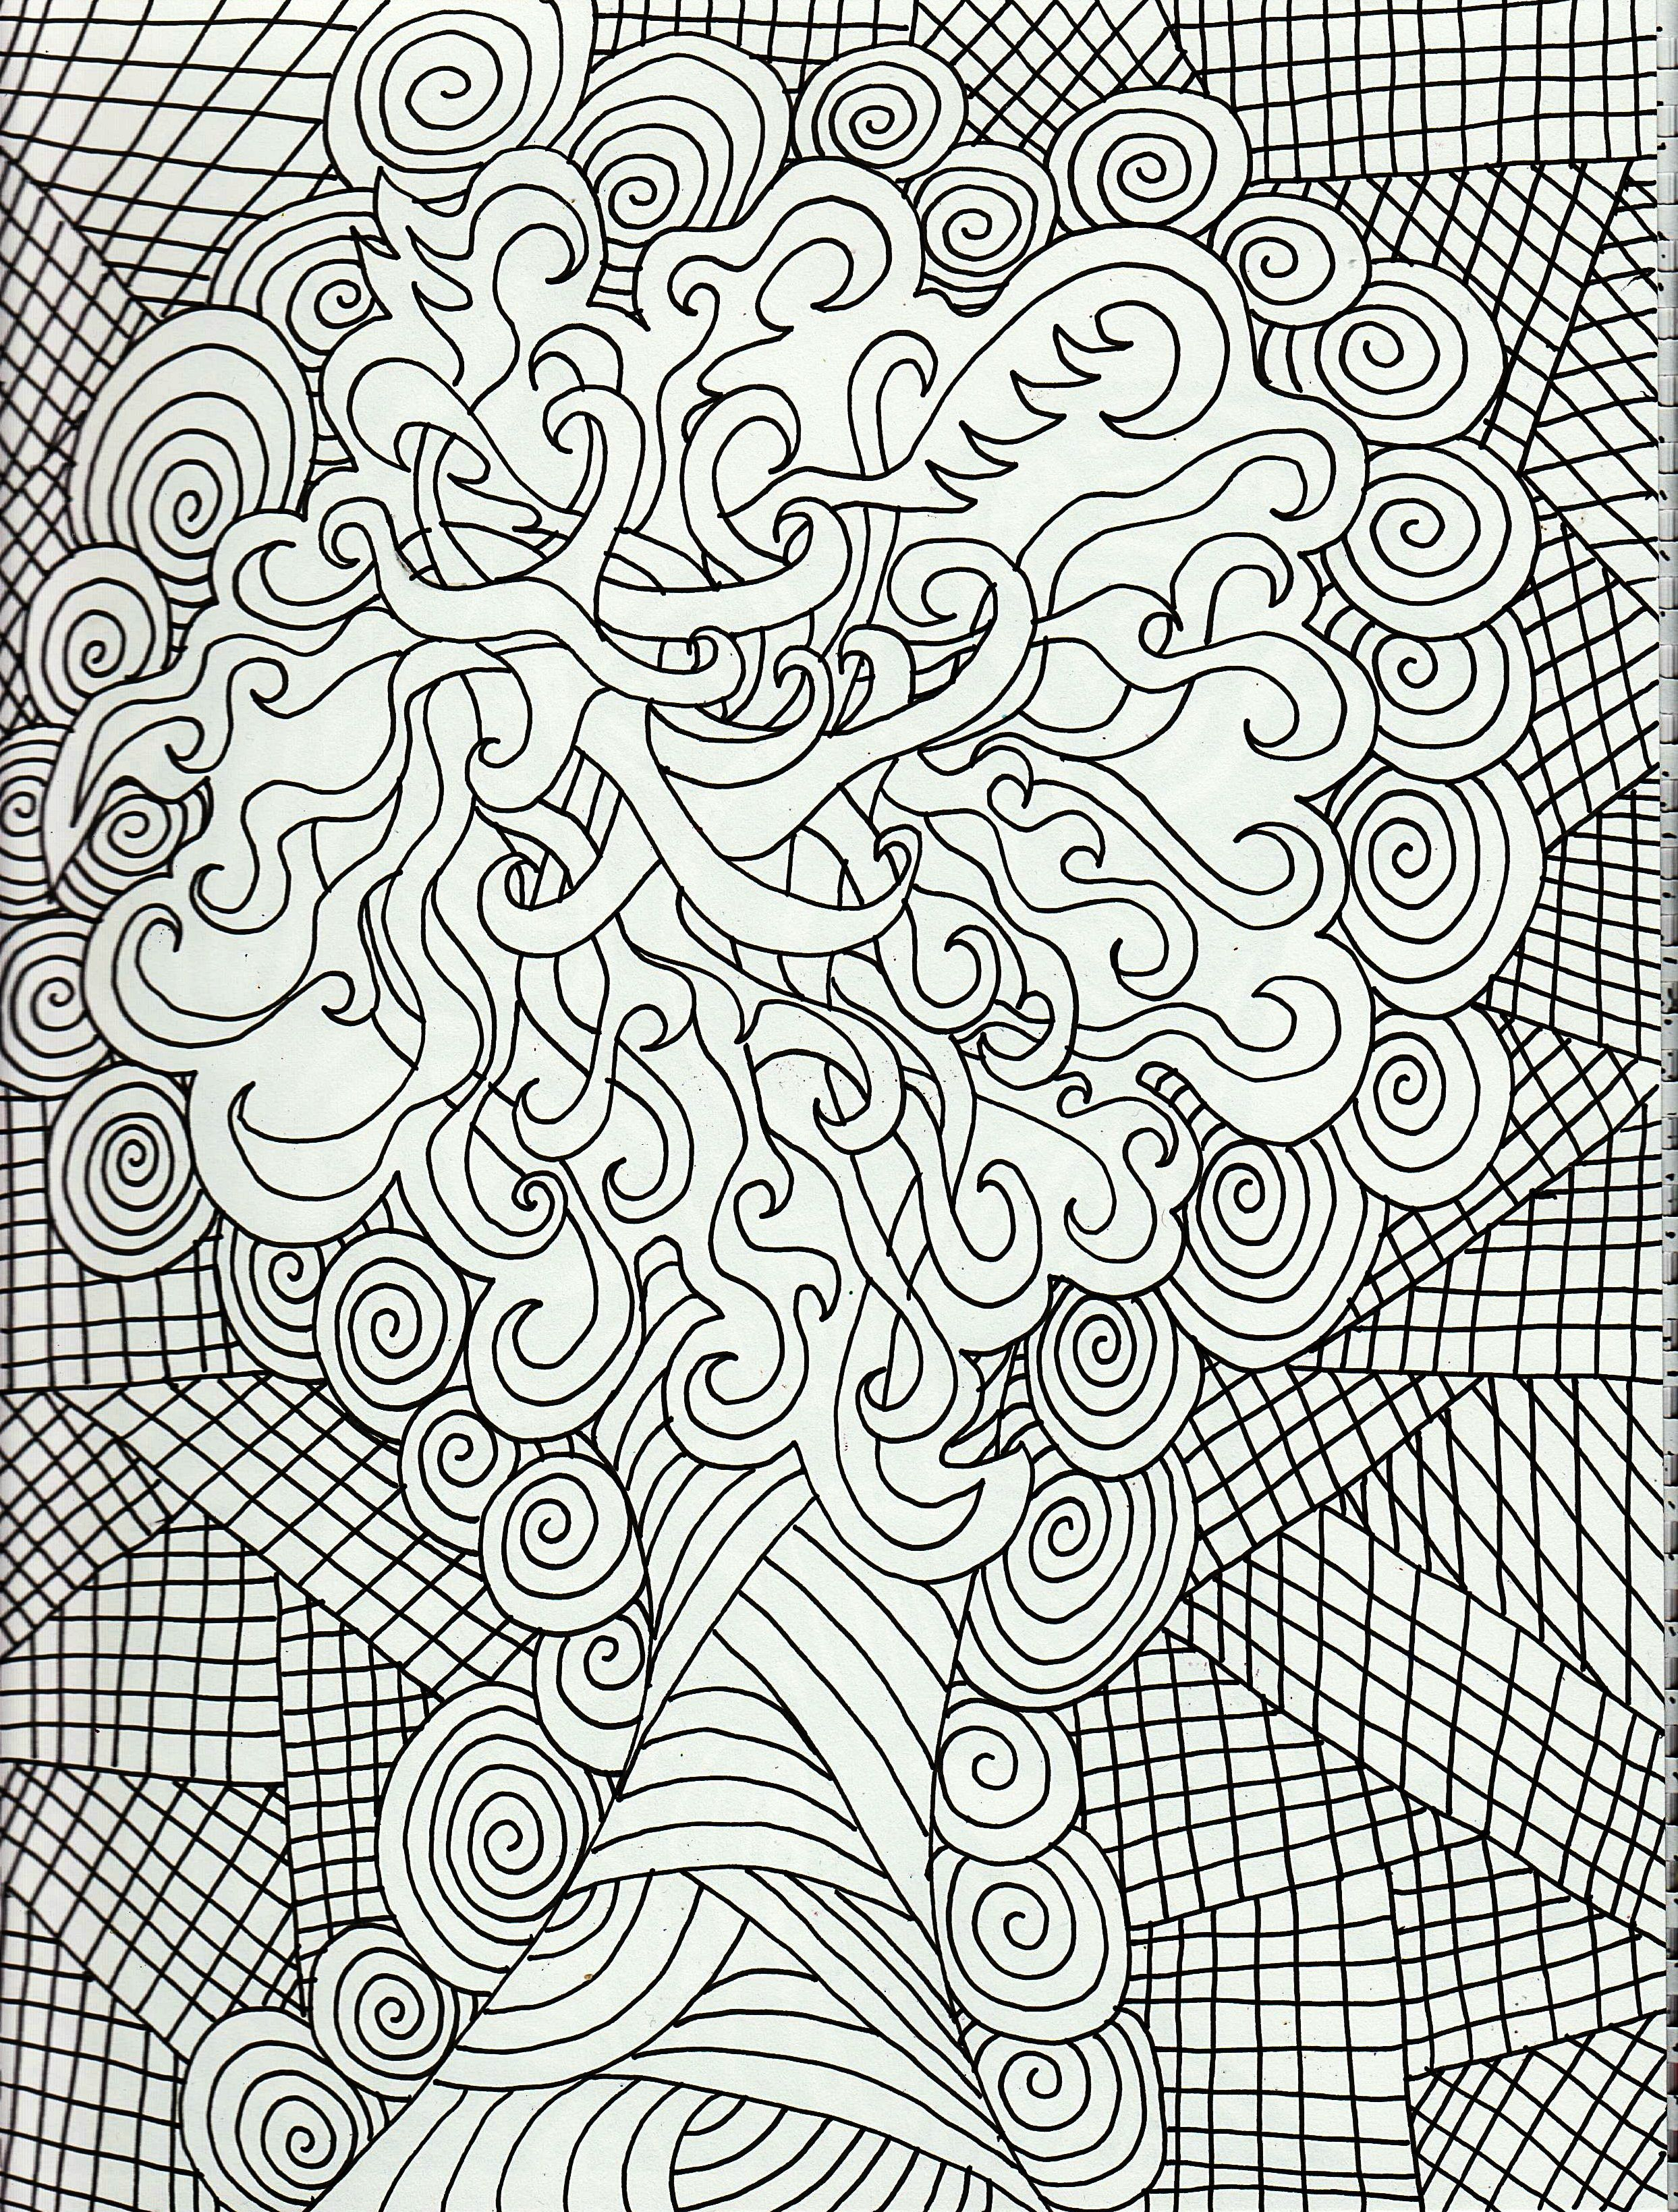 Adult Coloring Pages Free Great | Zentangle ideas | Pinterest ...